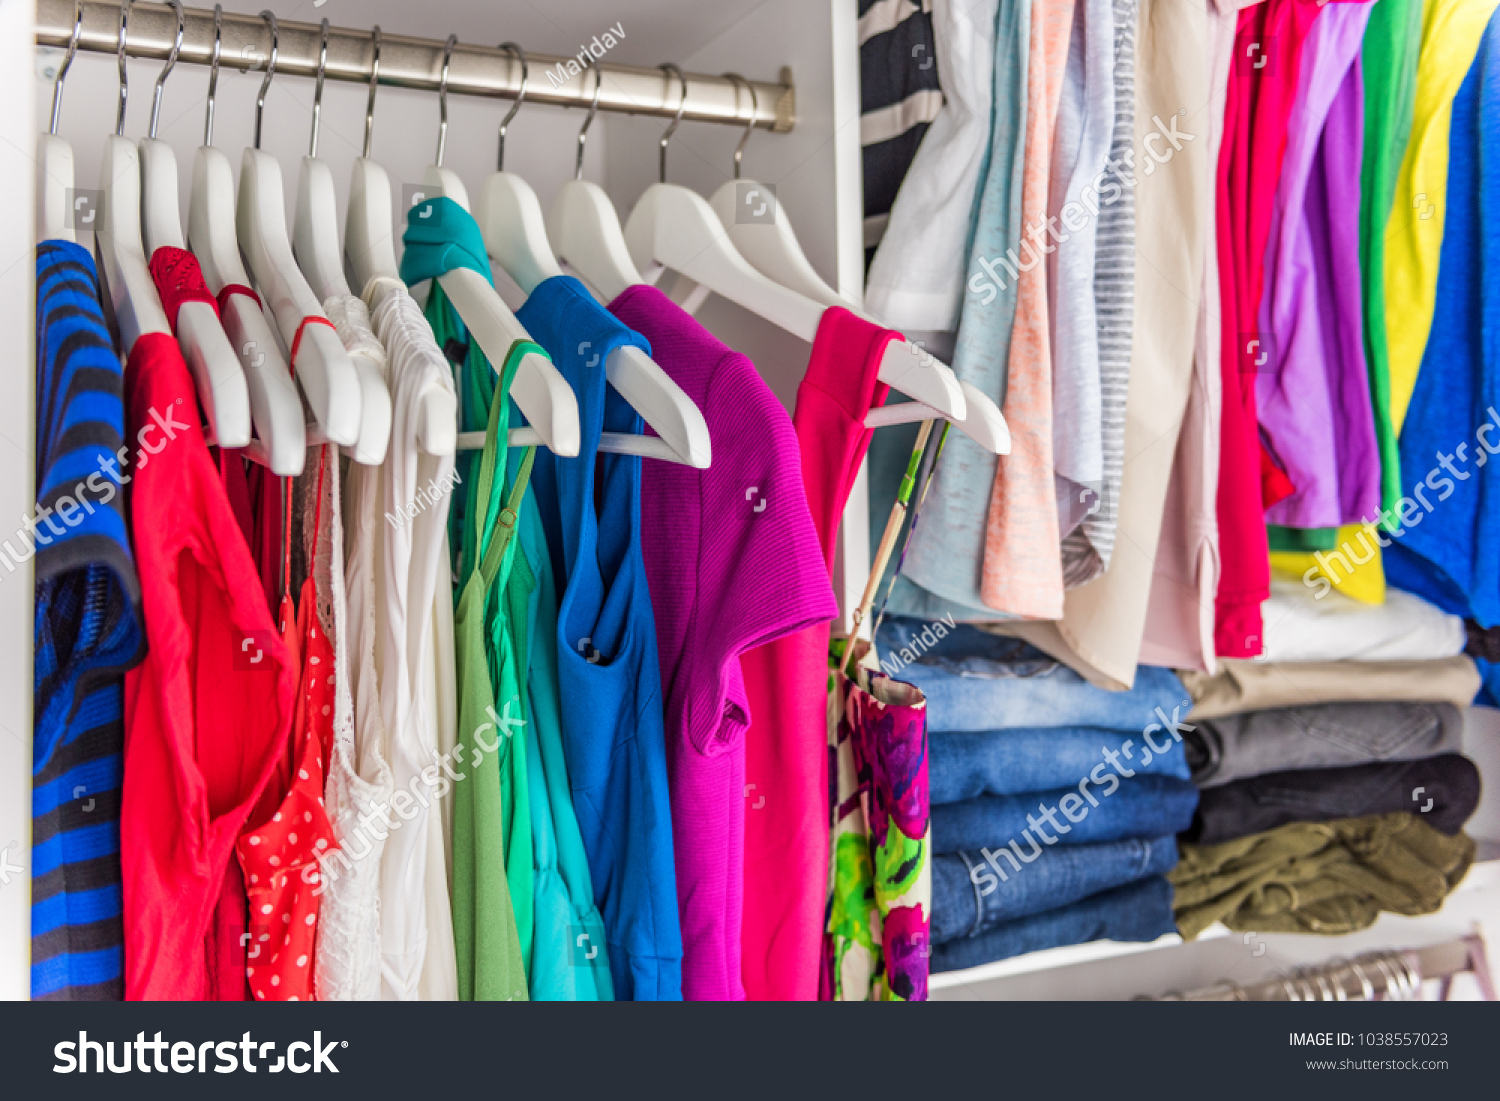 pinterest best closets ideas containerstore closet images expert the spaces store small tips on tiny container elfa